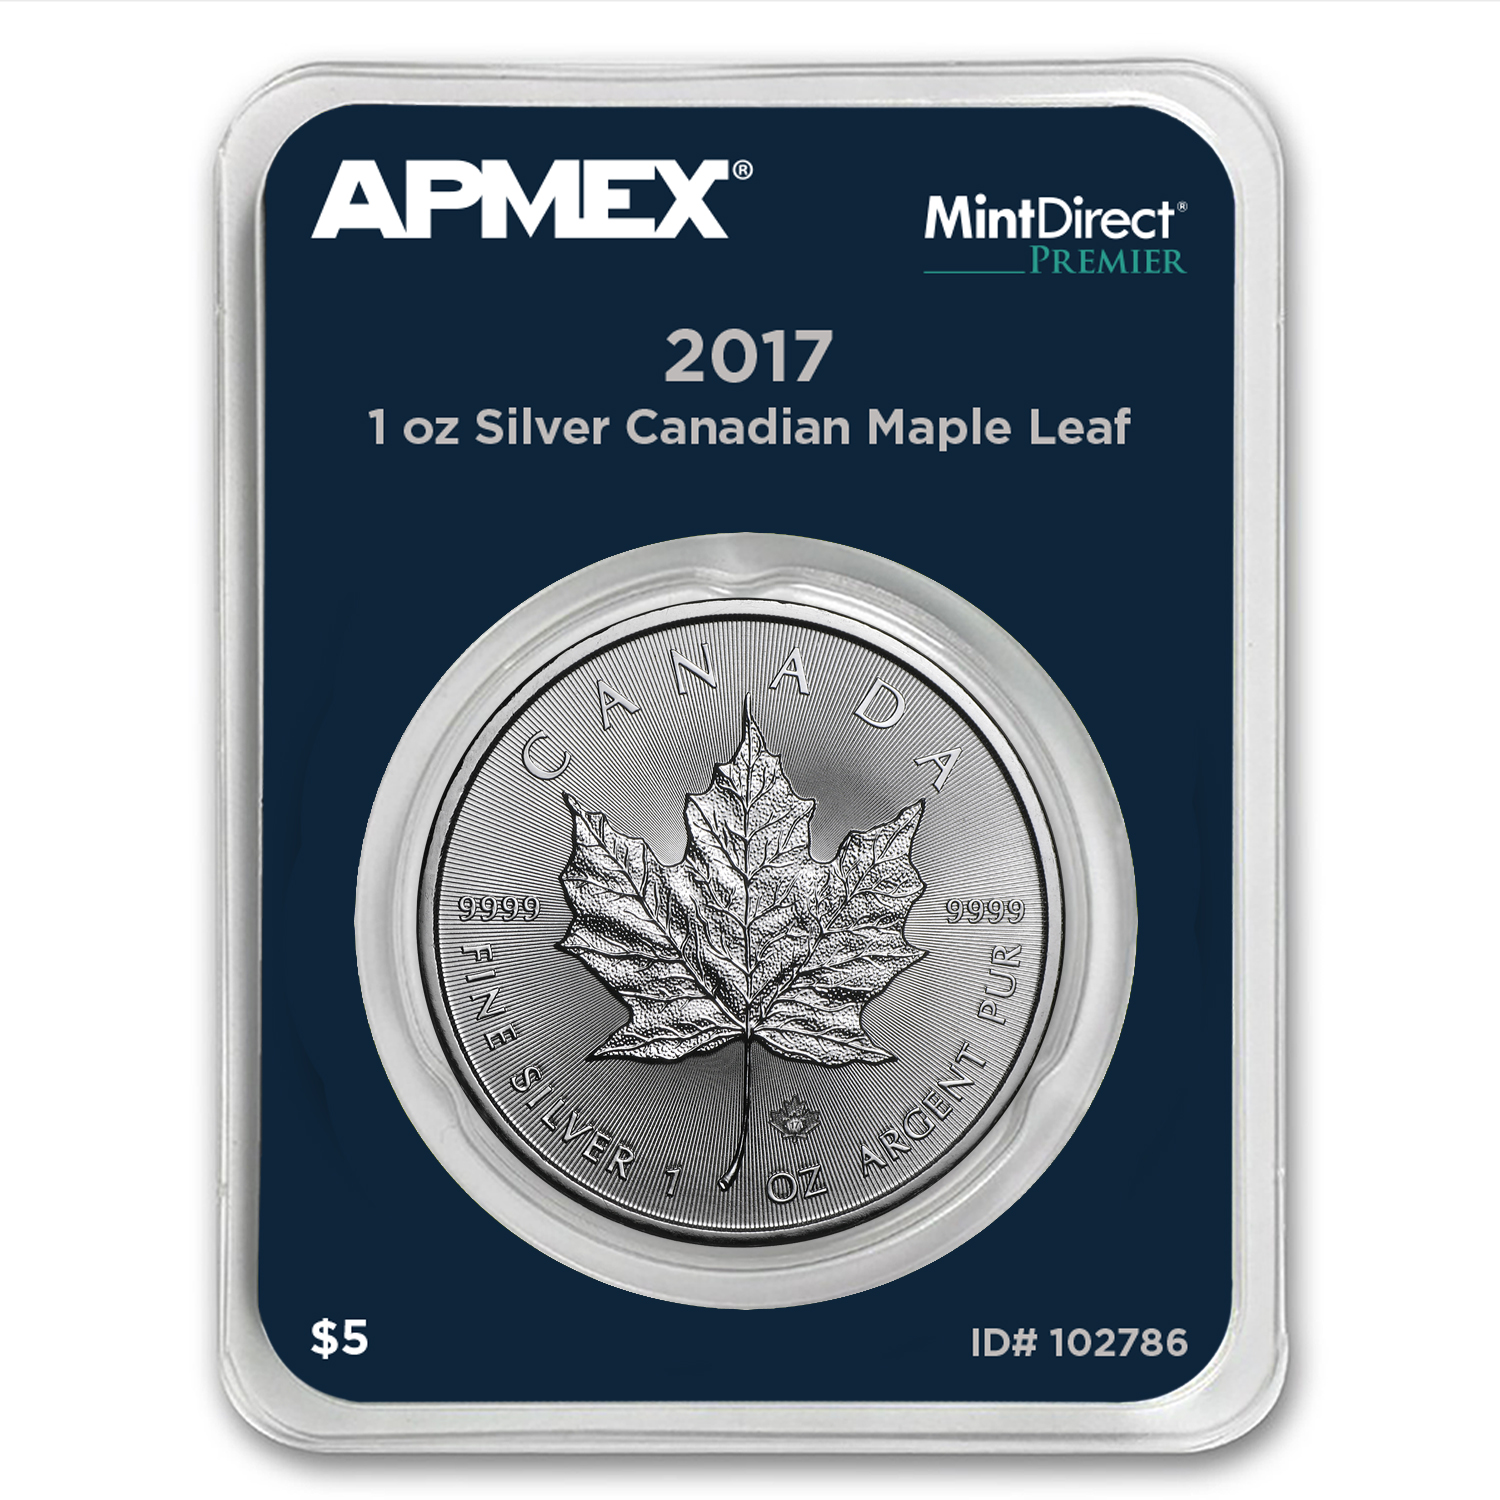 2017 1 oz Silver Maple Leaf (MintDirect® Premier Single)